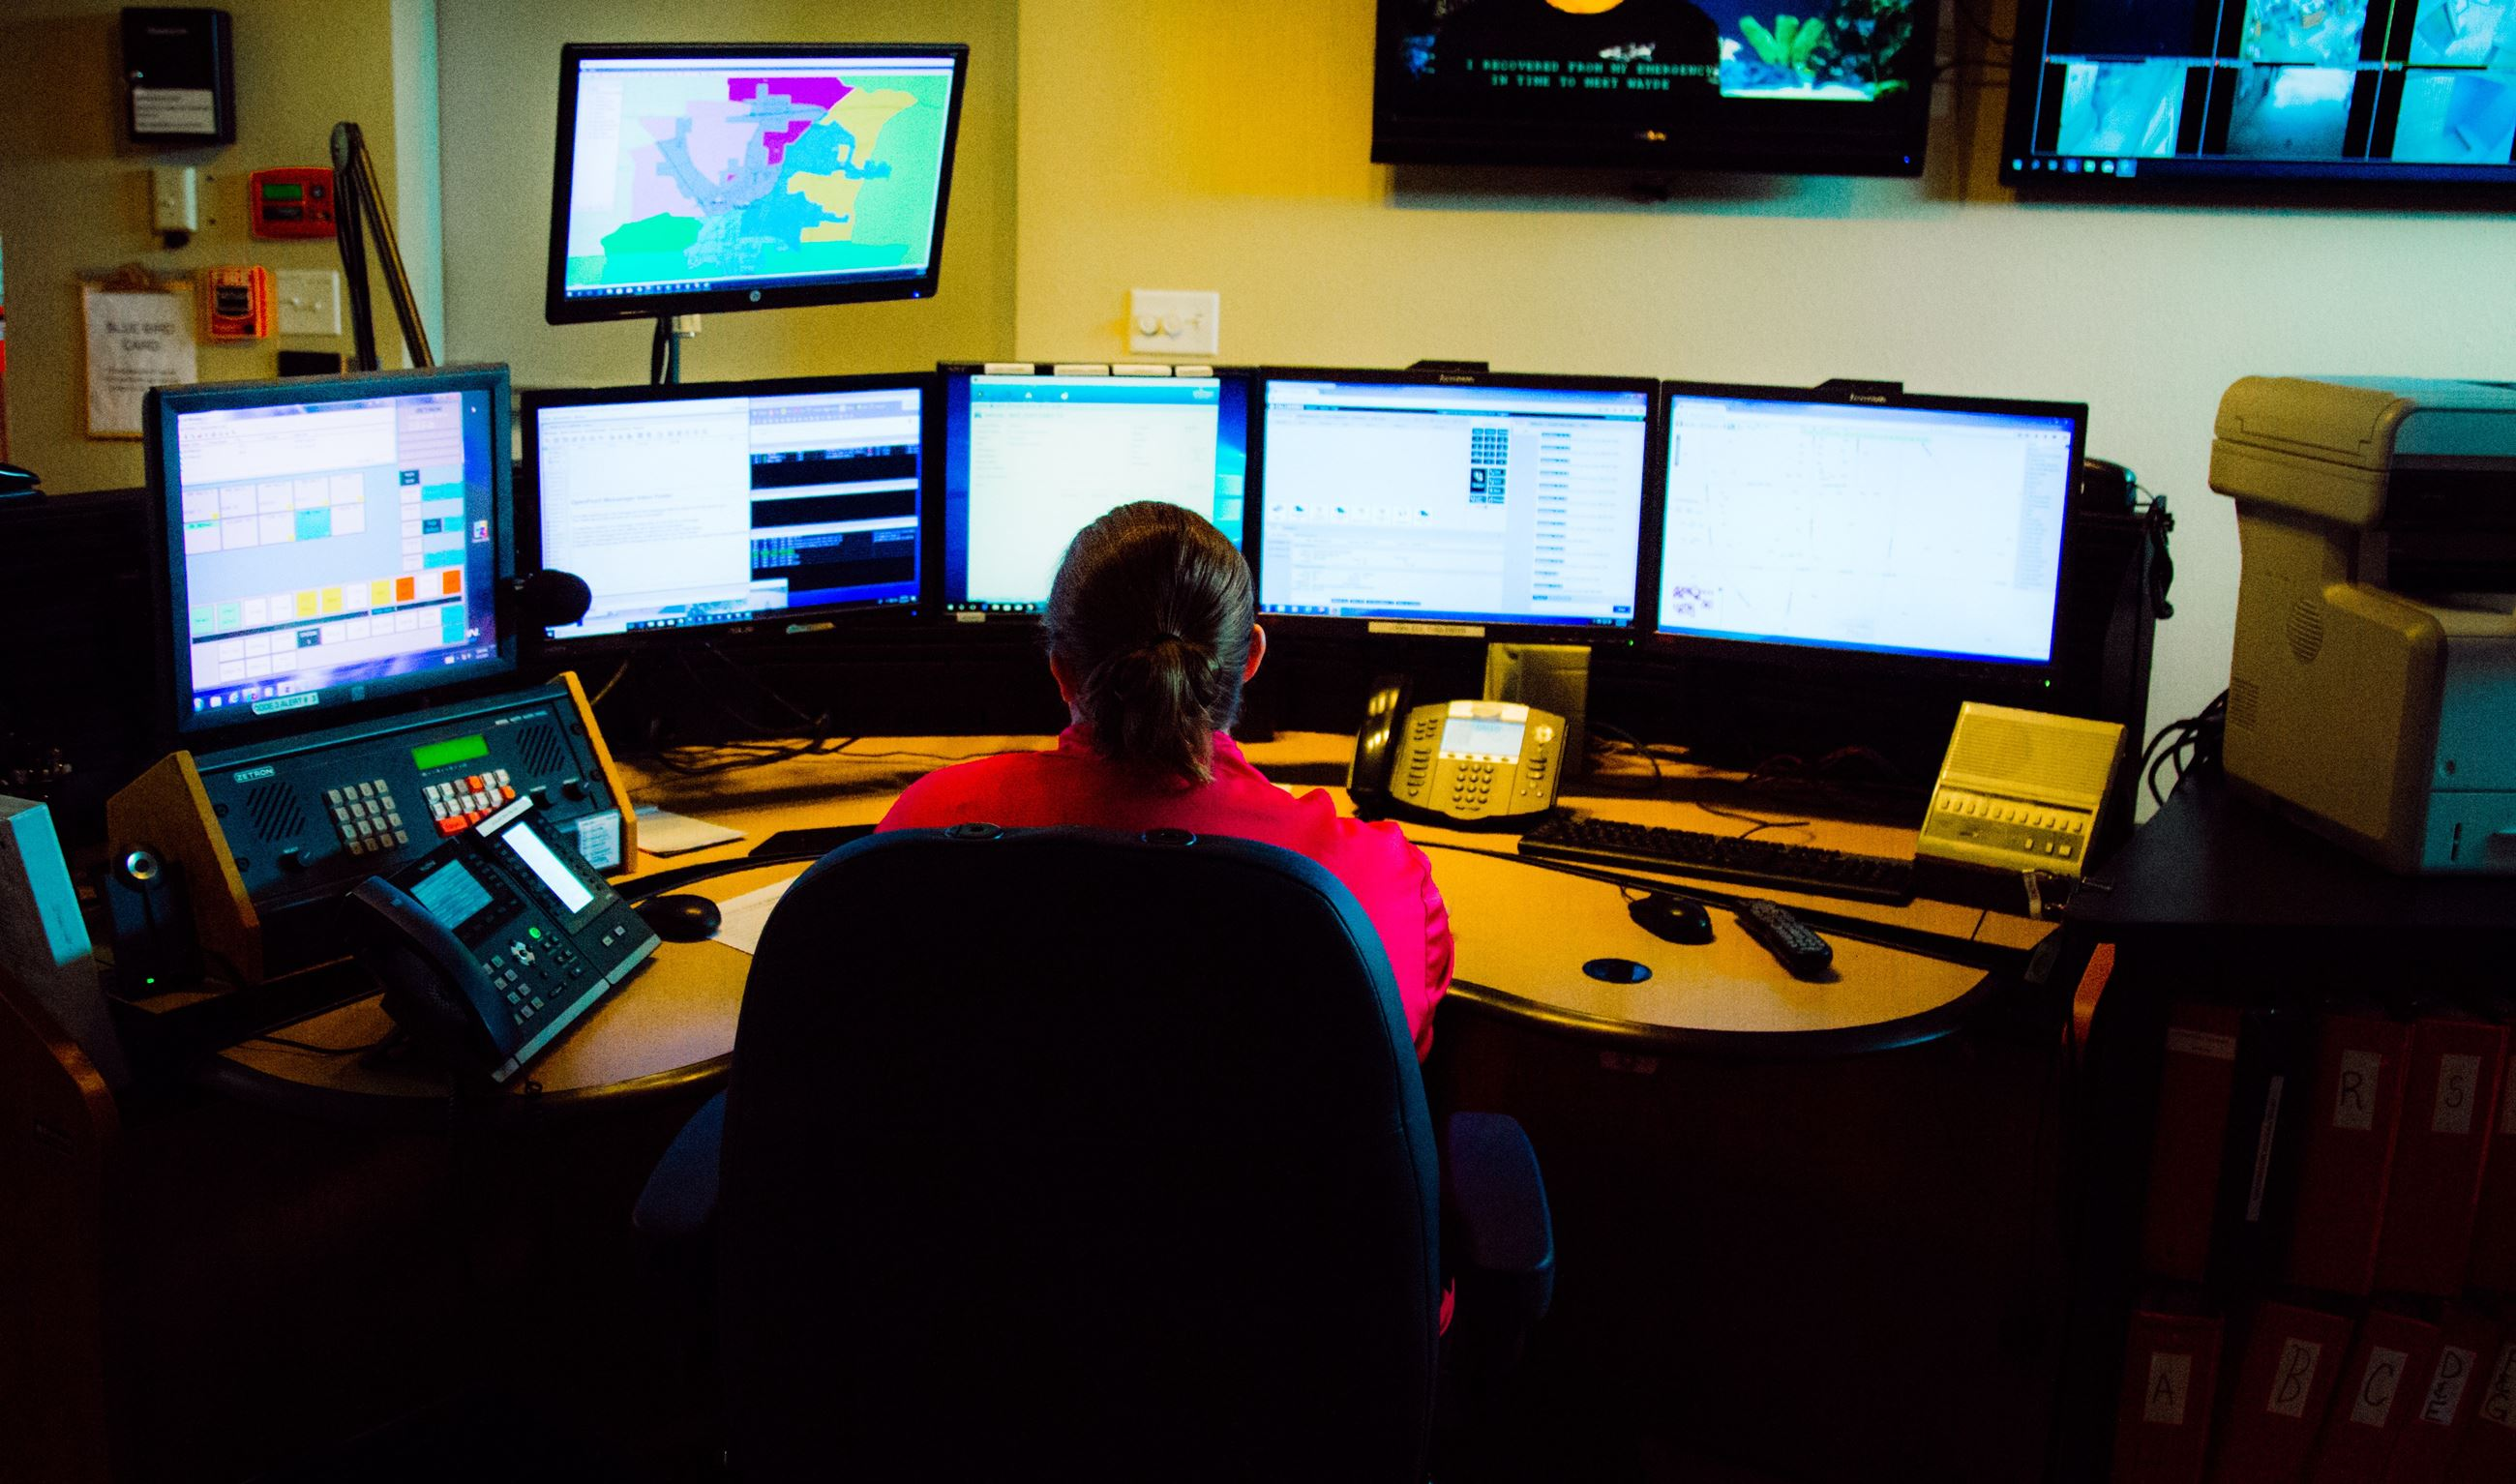 Dispatcher looking at multiple computer monitors in dispatch center, 911, 9-1-1, communications